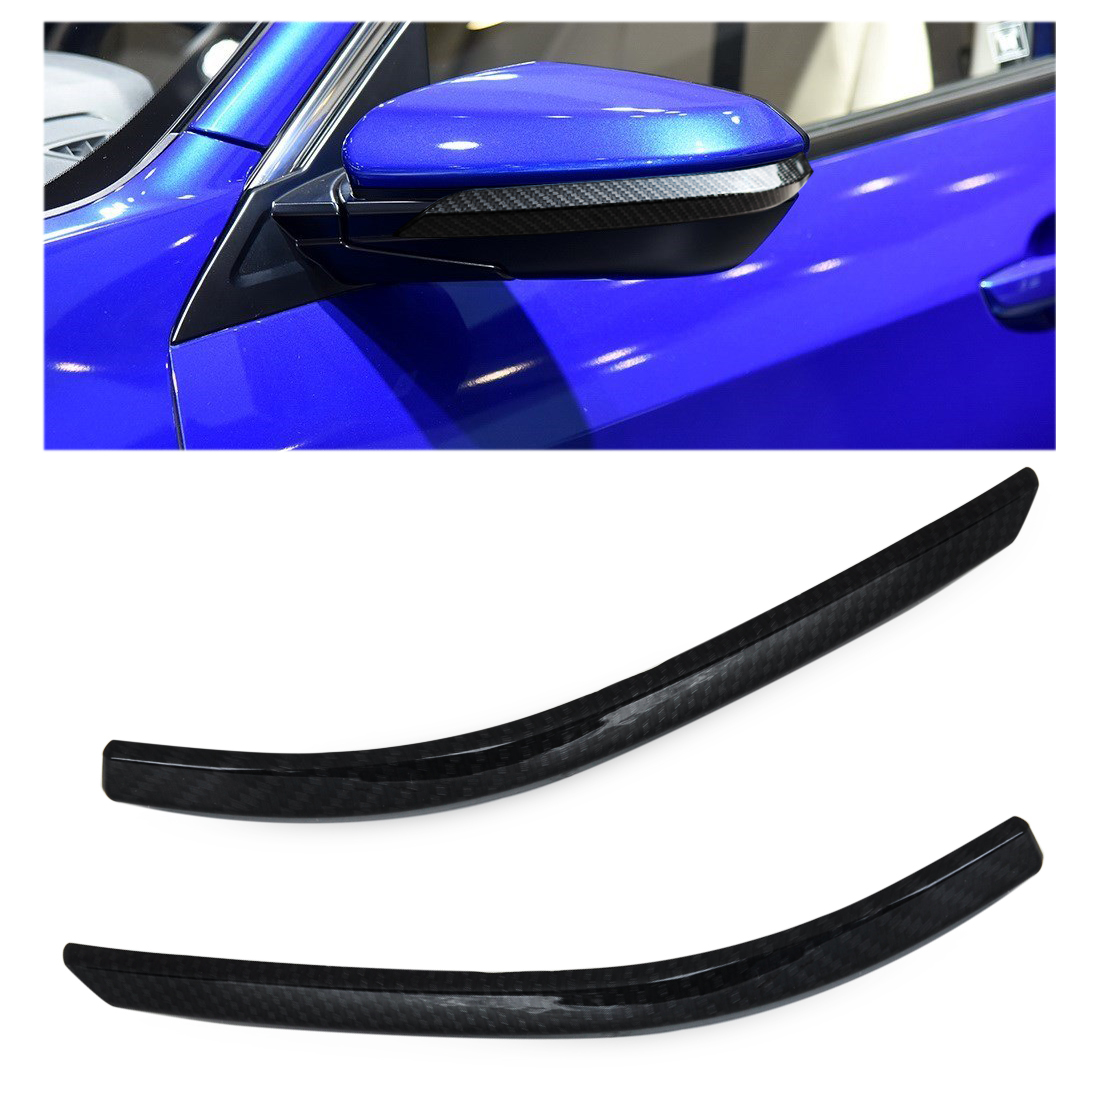 beler 2x New Black ABS Plastic Carbon Fiber Texture Rearview Side Mirror Strip Cover Trim For Honda Civic 2016 2017 Car Styling